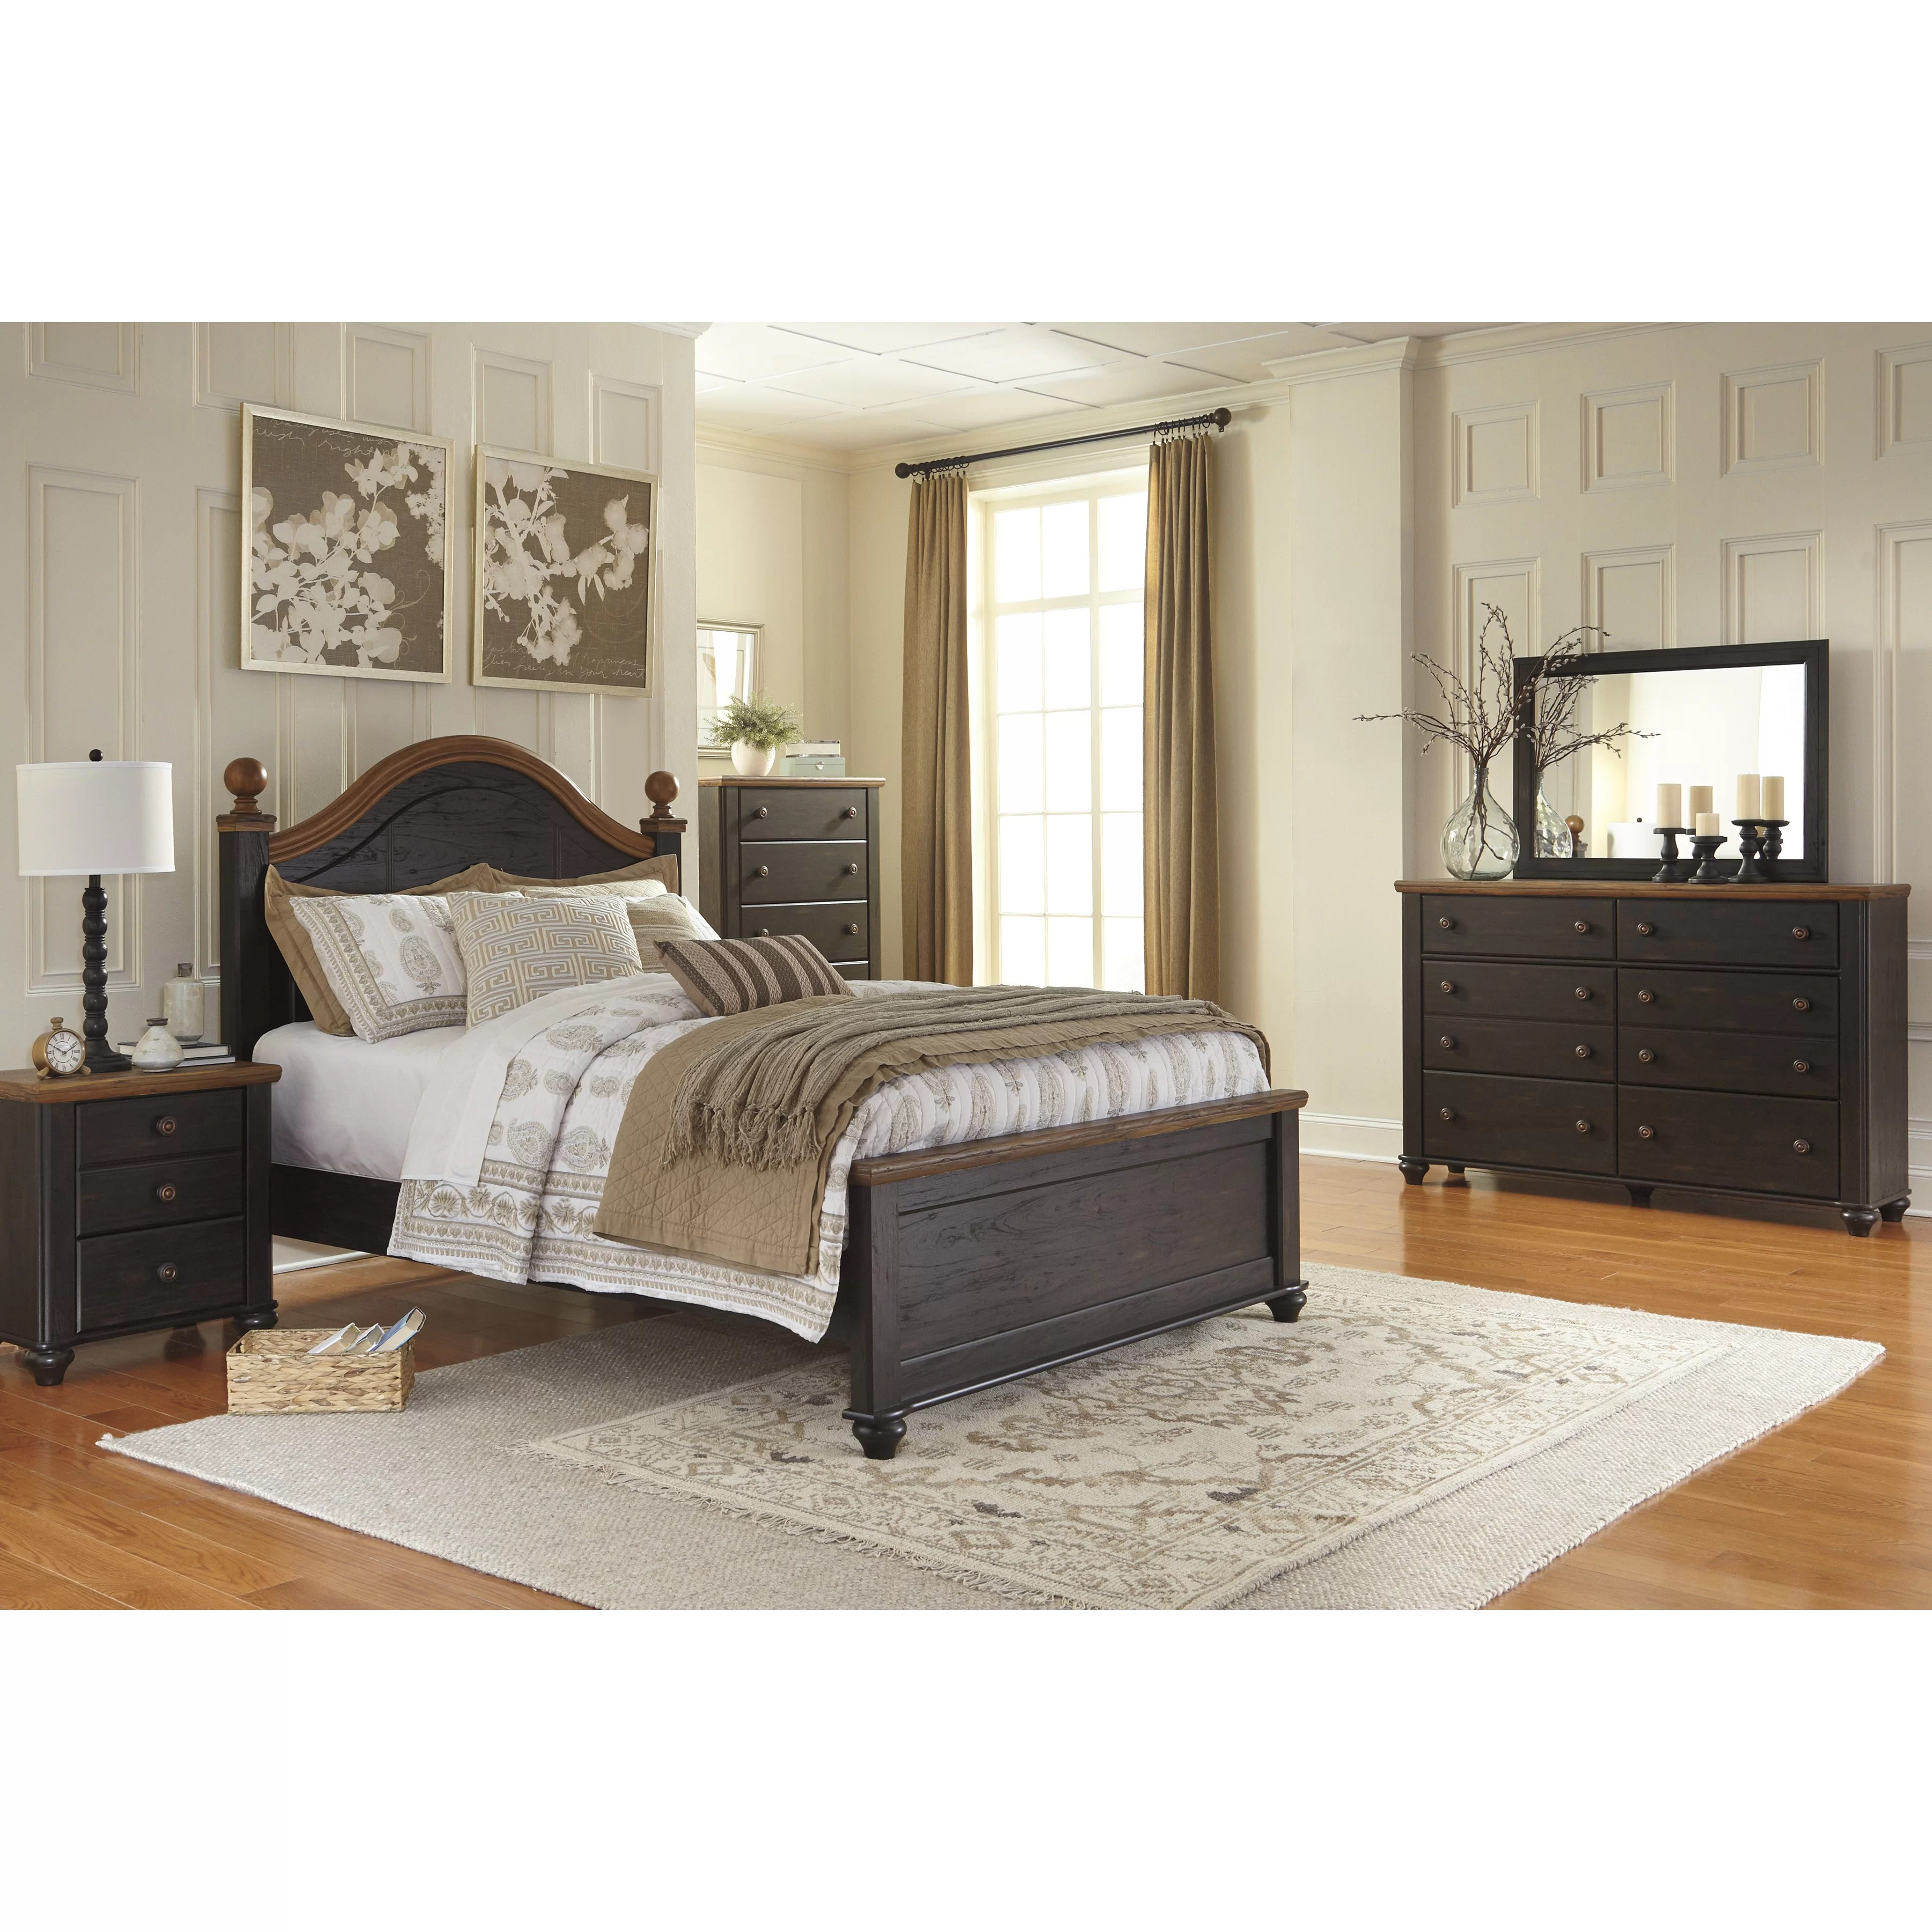 Signature Design by Ashley Panel Customizable Bedroom Set